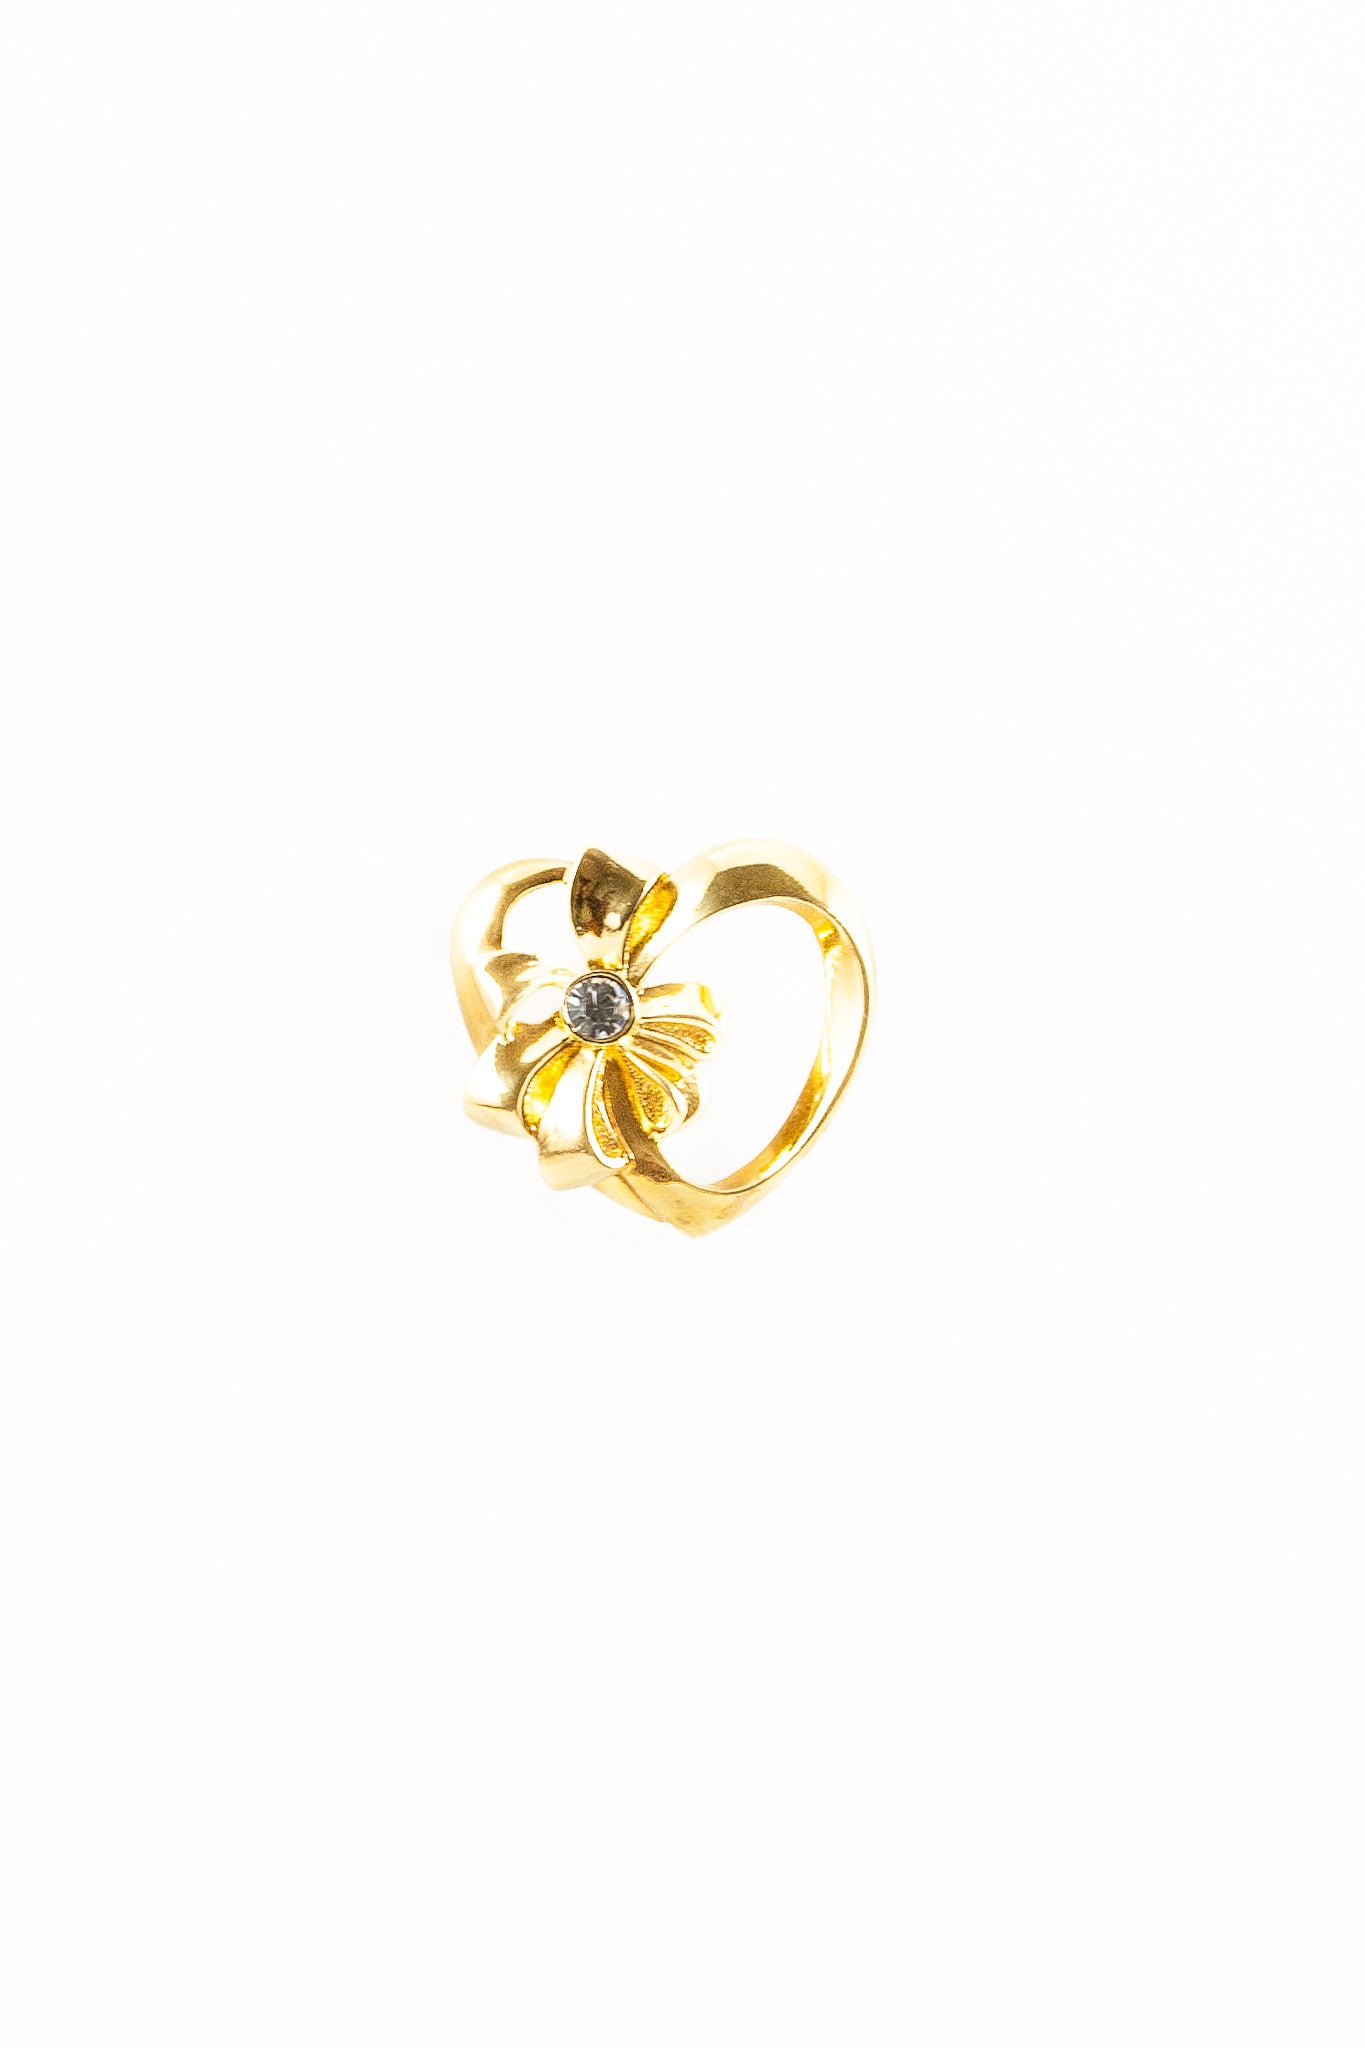 80's__Avon__Bow Heart Pin